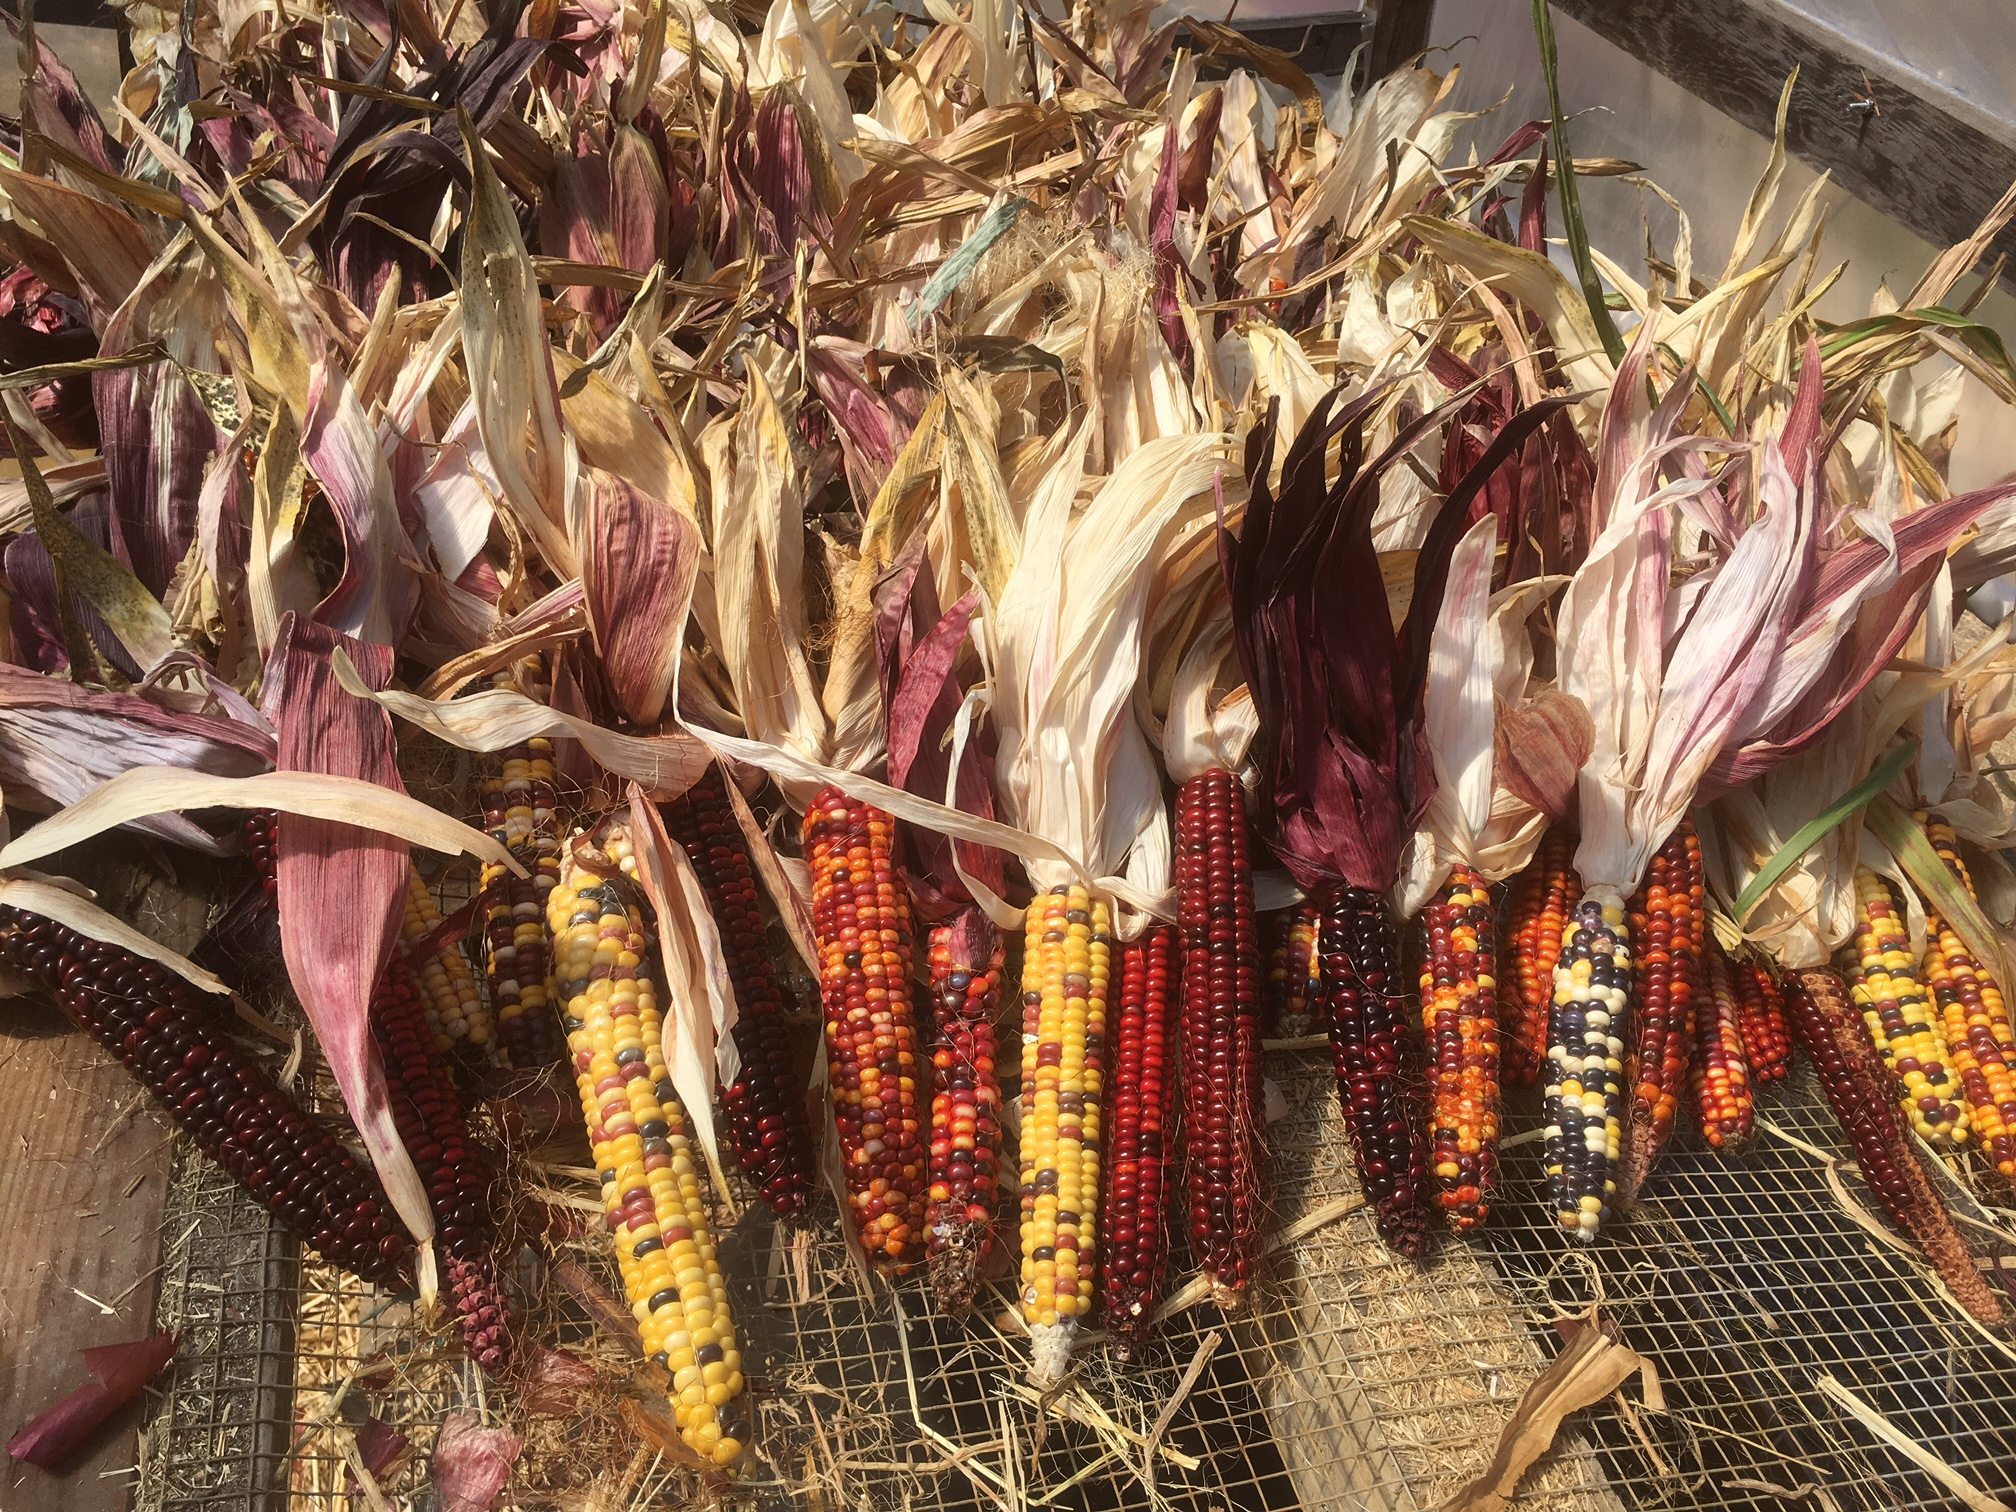 The Painted Mountain corn drying in the greenhouse